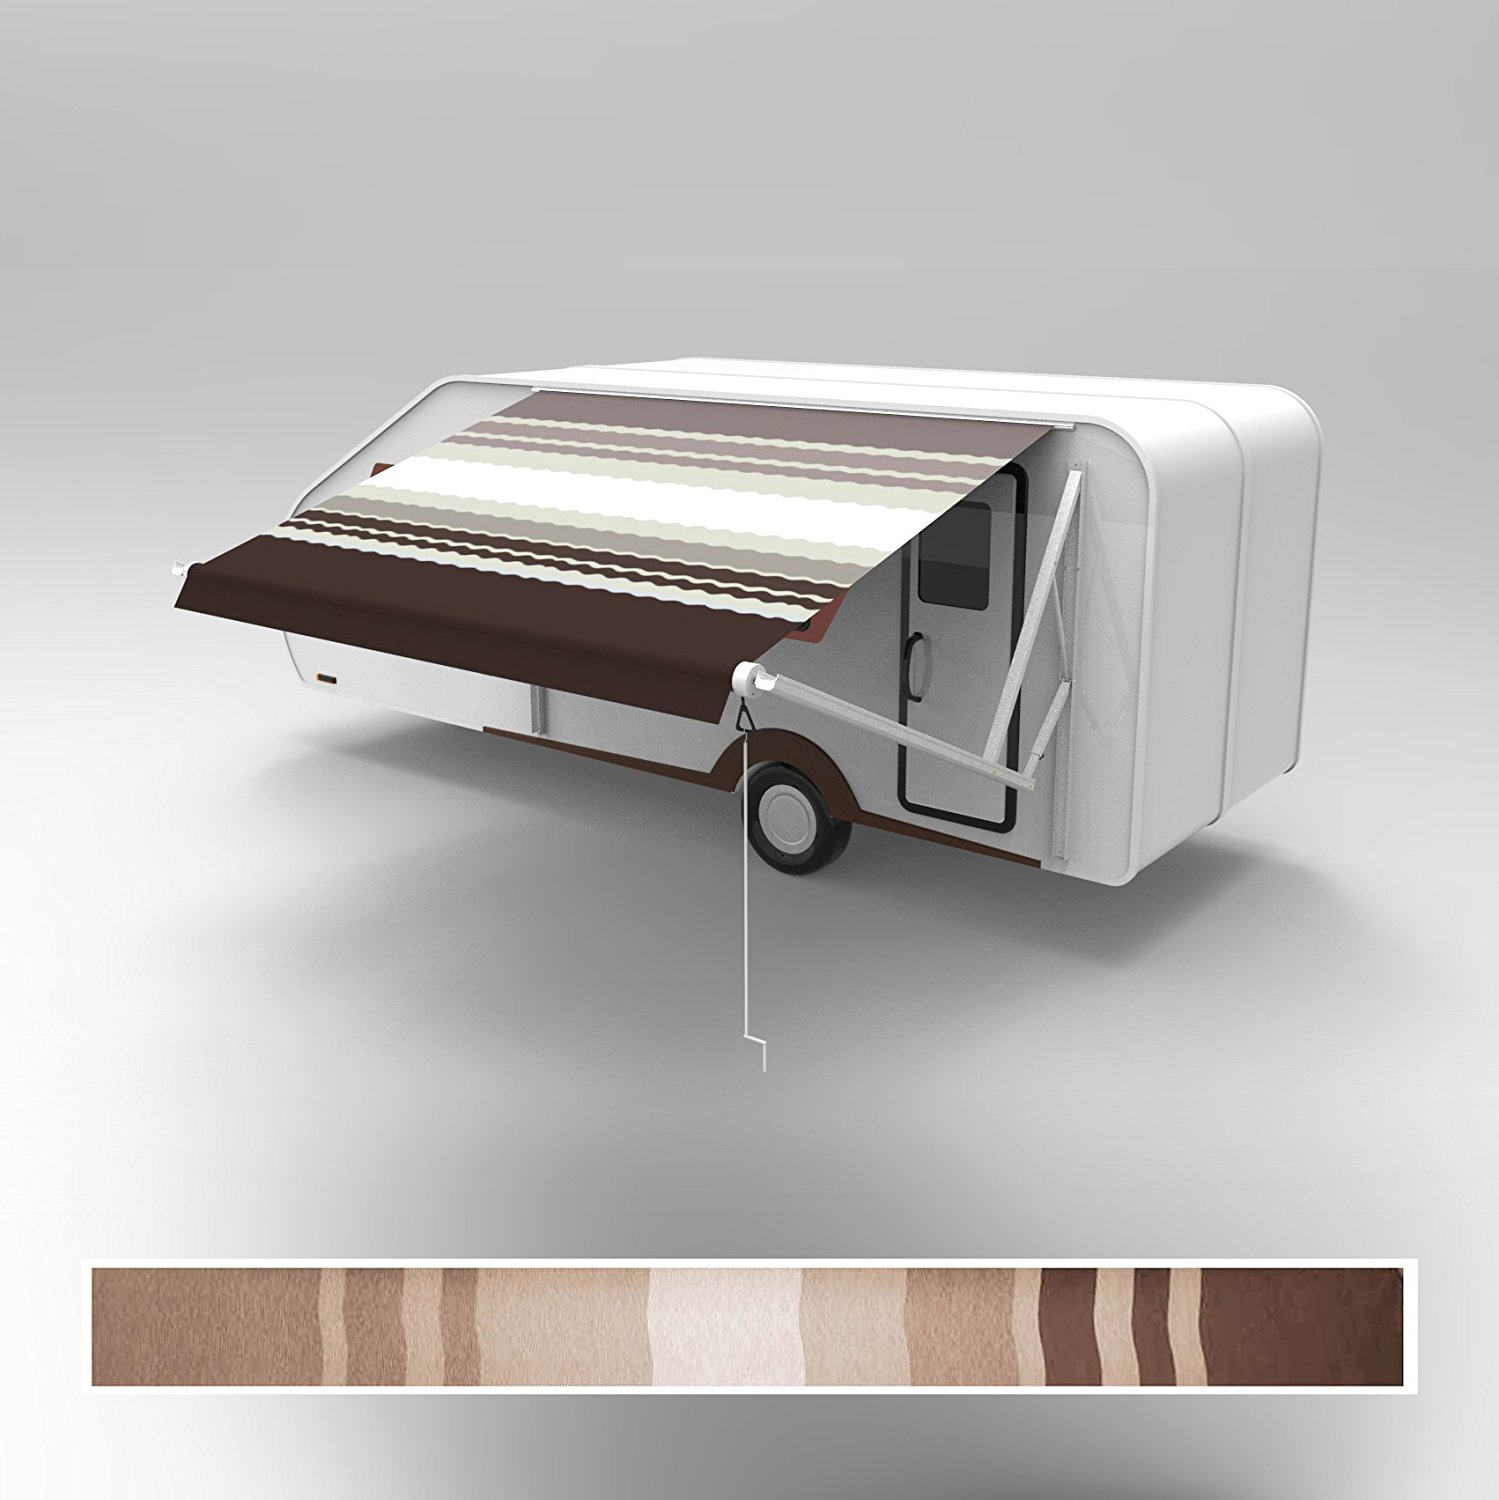 RVAWM20x8BRSTR34 Motorized Retractable RV/Patio Awning 20 x 8 Feet Brown and Whi